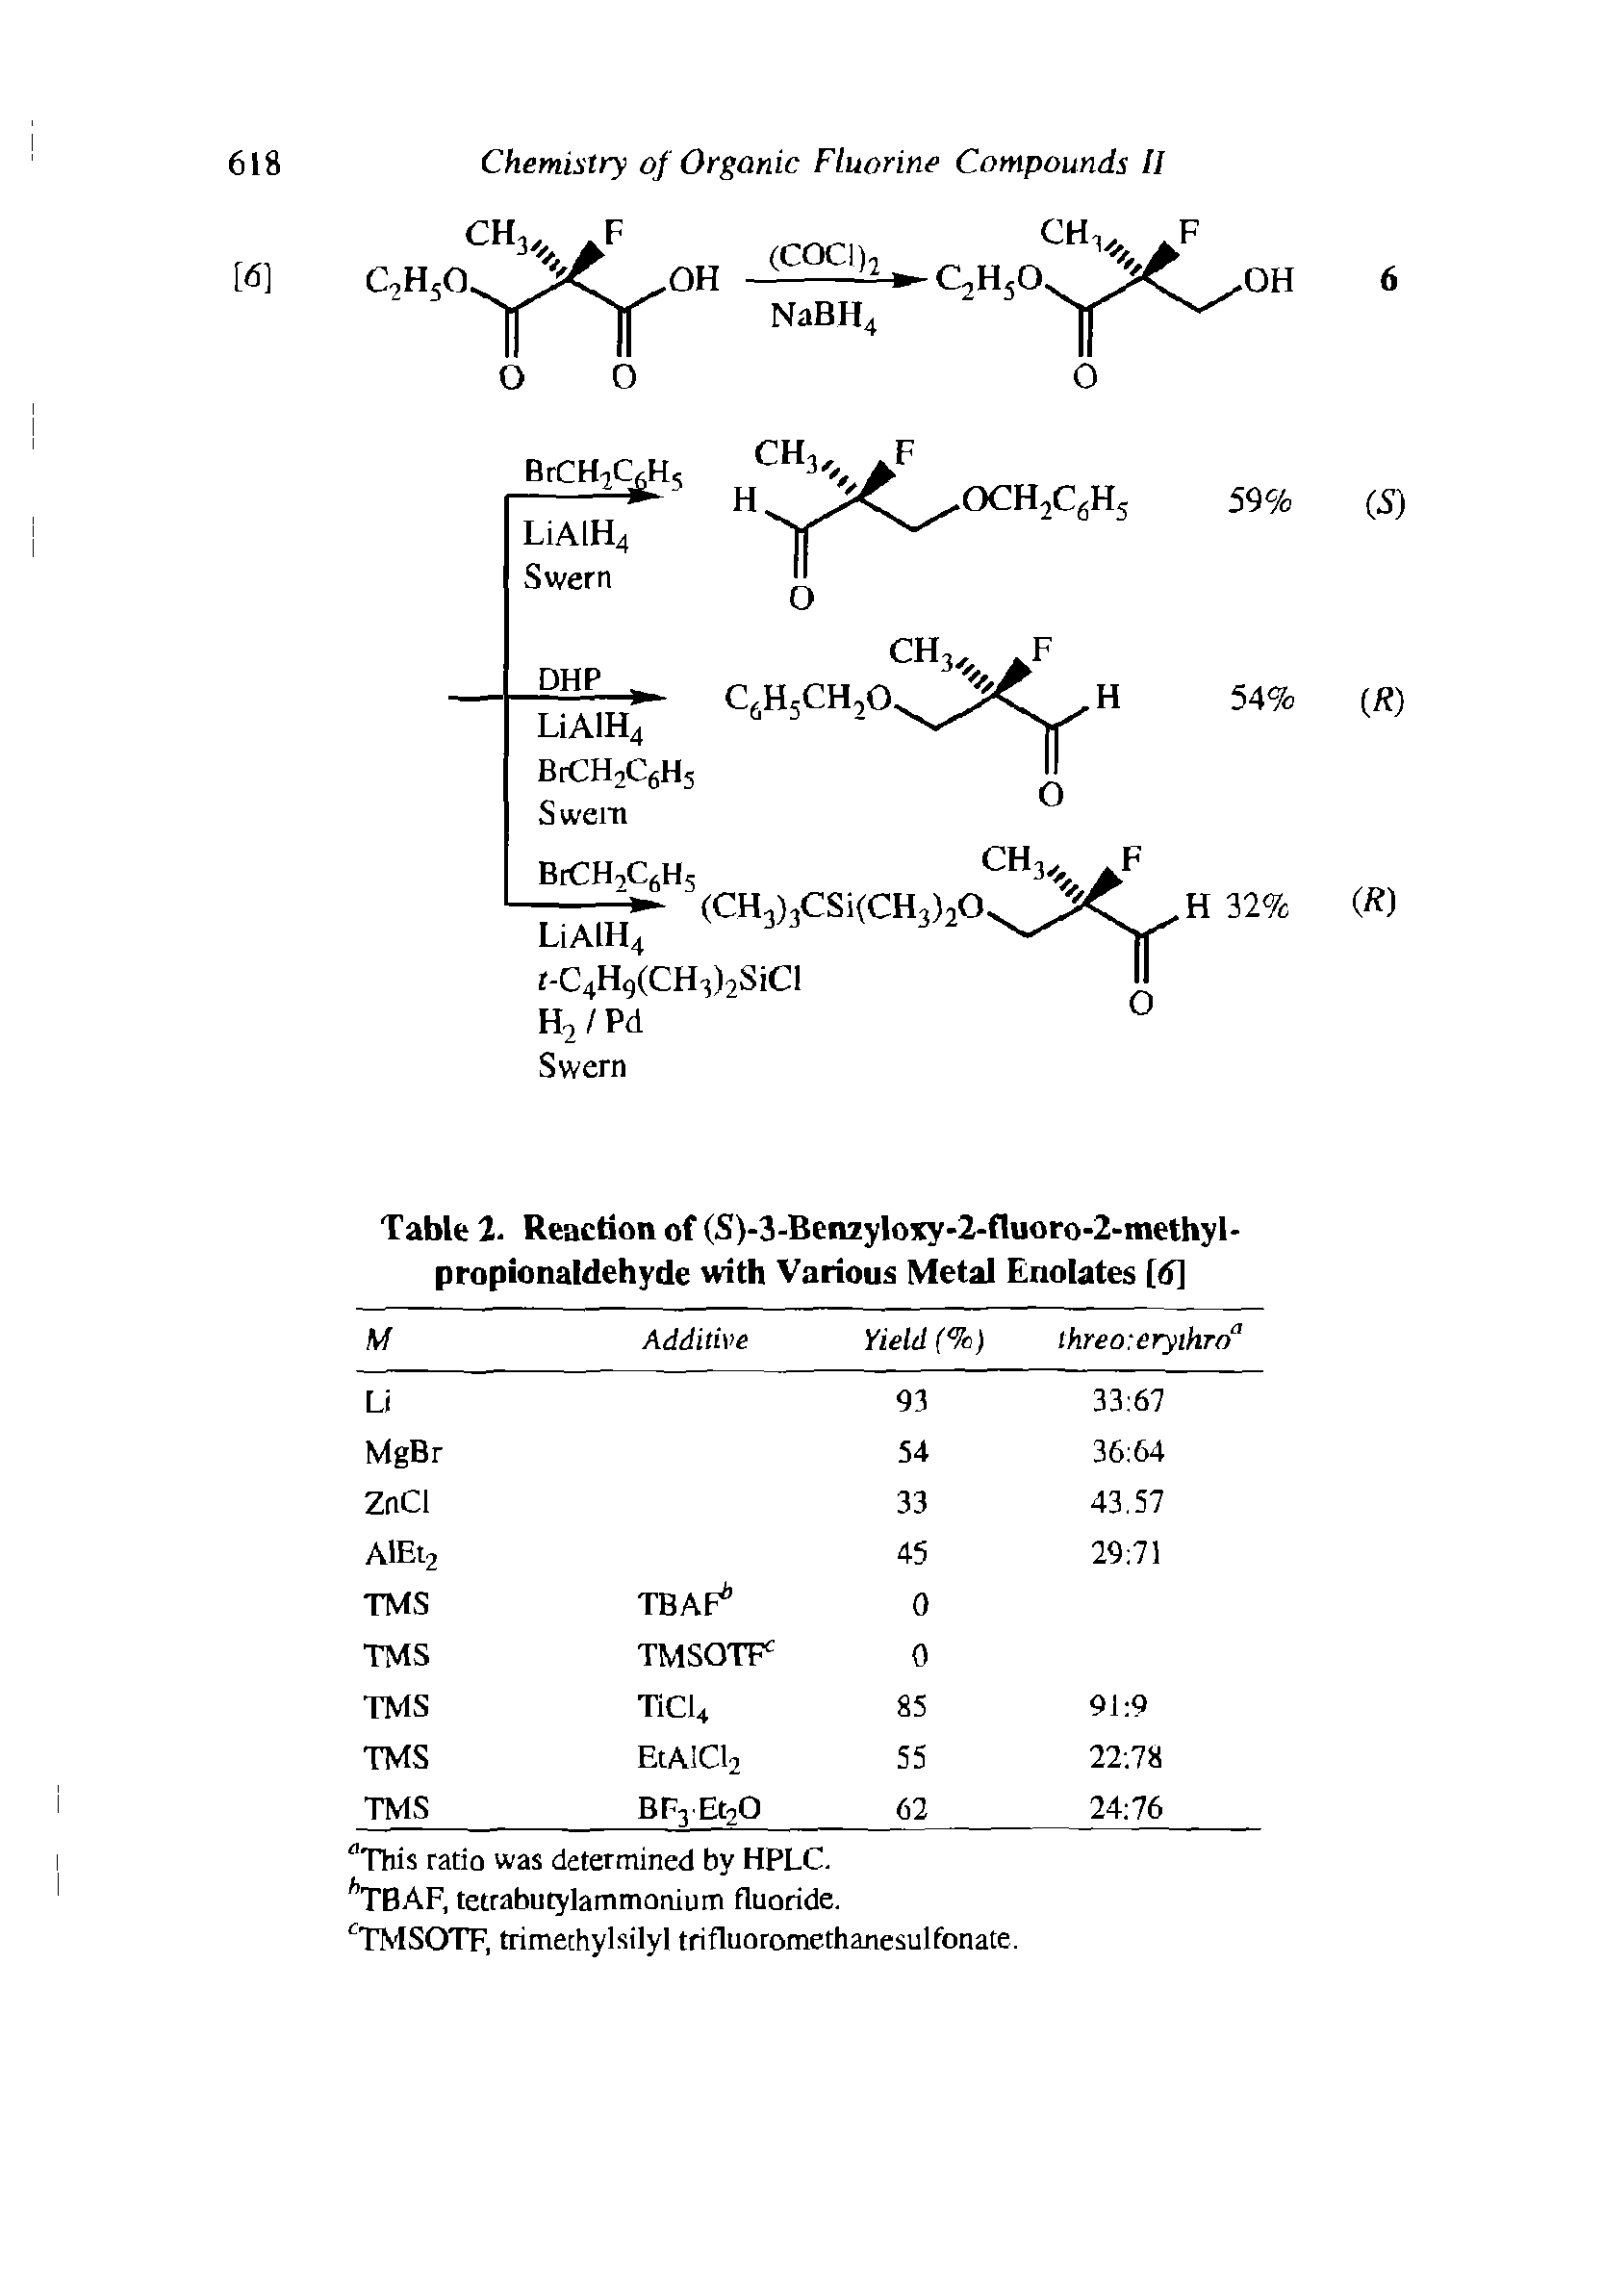 "Table 2. Reaction of (S)-3-Ben2yloxy-2-fluoro-2-<a href=""/info/methyl_propionaldehyde"">methyl-propionaldehyde</a> with <a href=""/info/metal_for_various"">Various Metal</a> Enolates [d]"